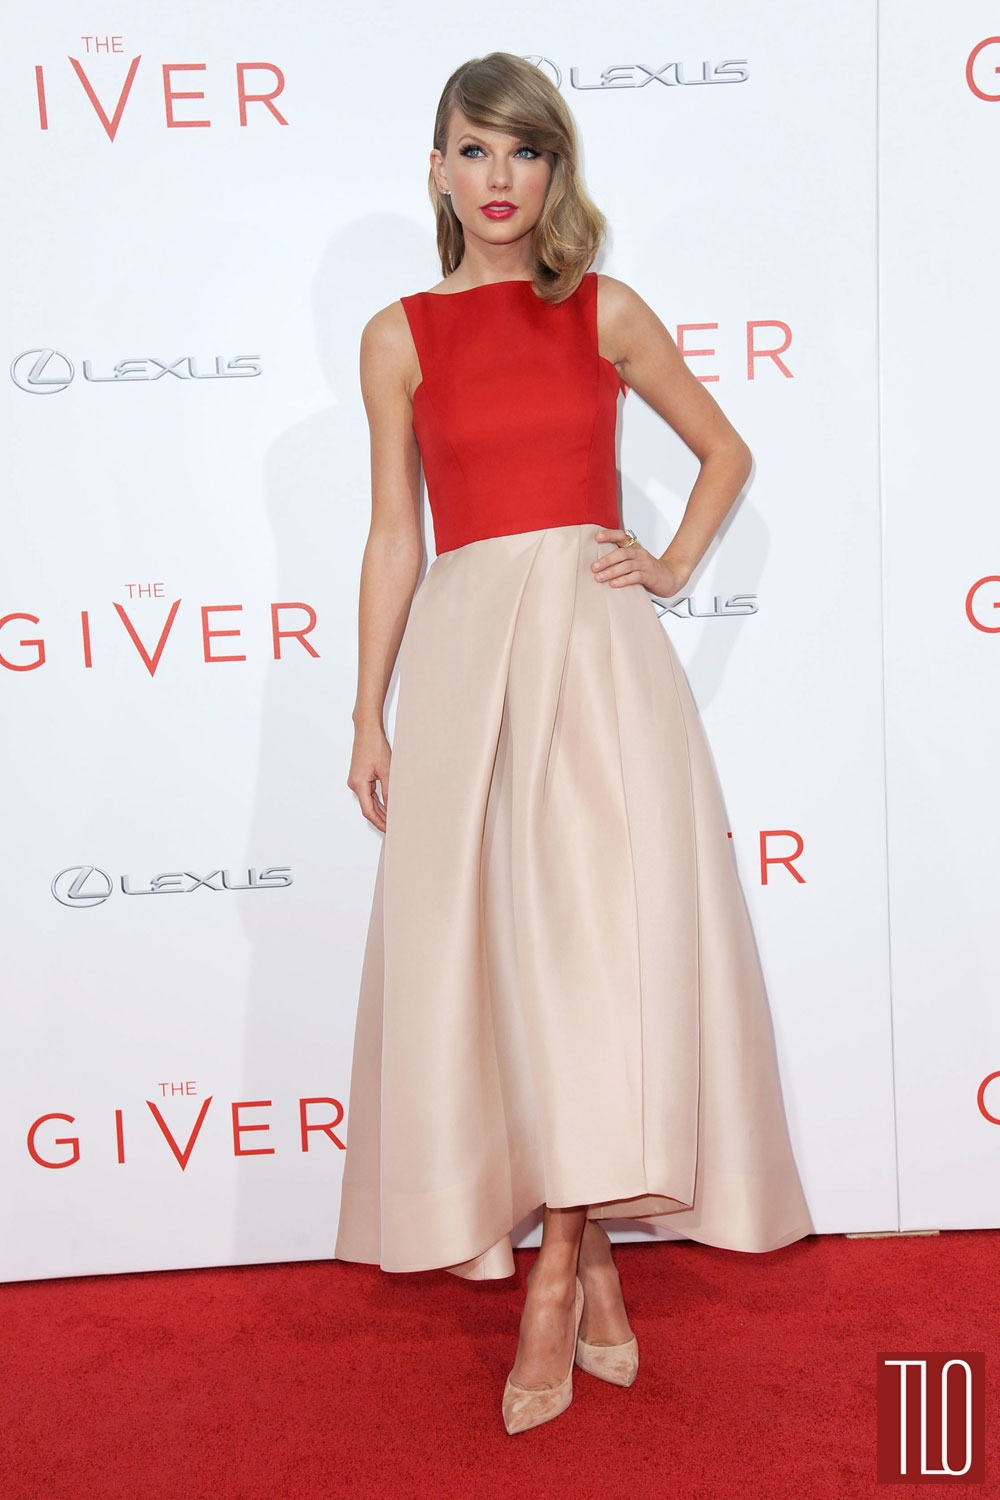 Taylor-Swift-The-Giver-New-York-Movie-Premiere-Monique-Lhuillier-Red-Carpet-Tom-LOrenzo-Site-TLO (1)